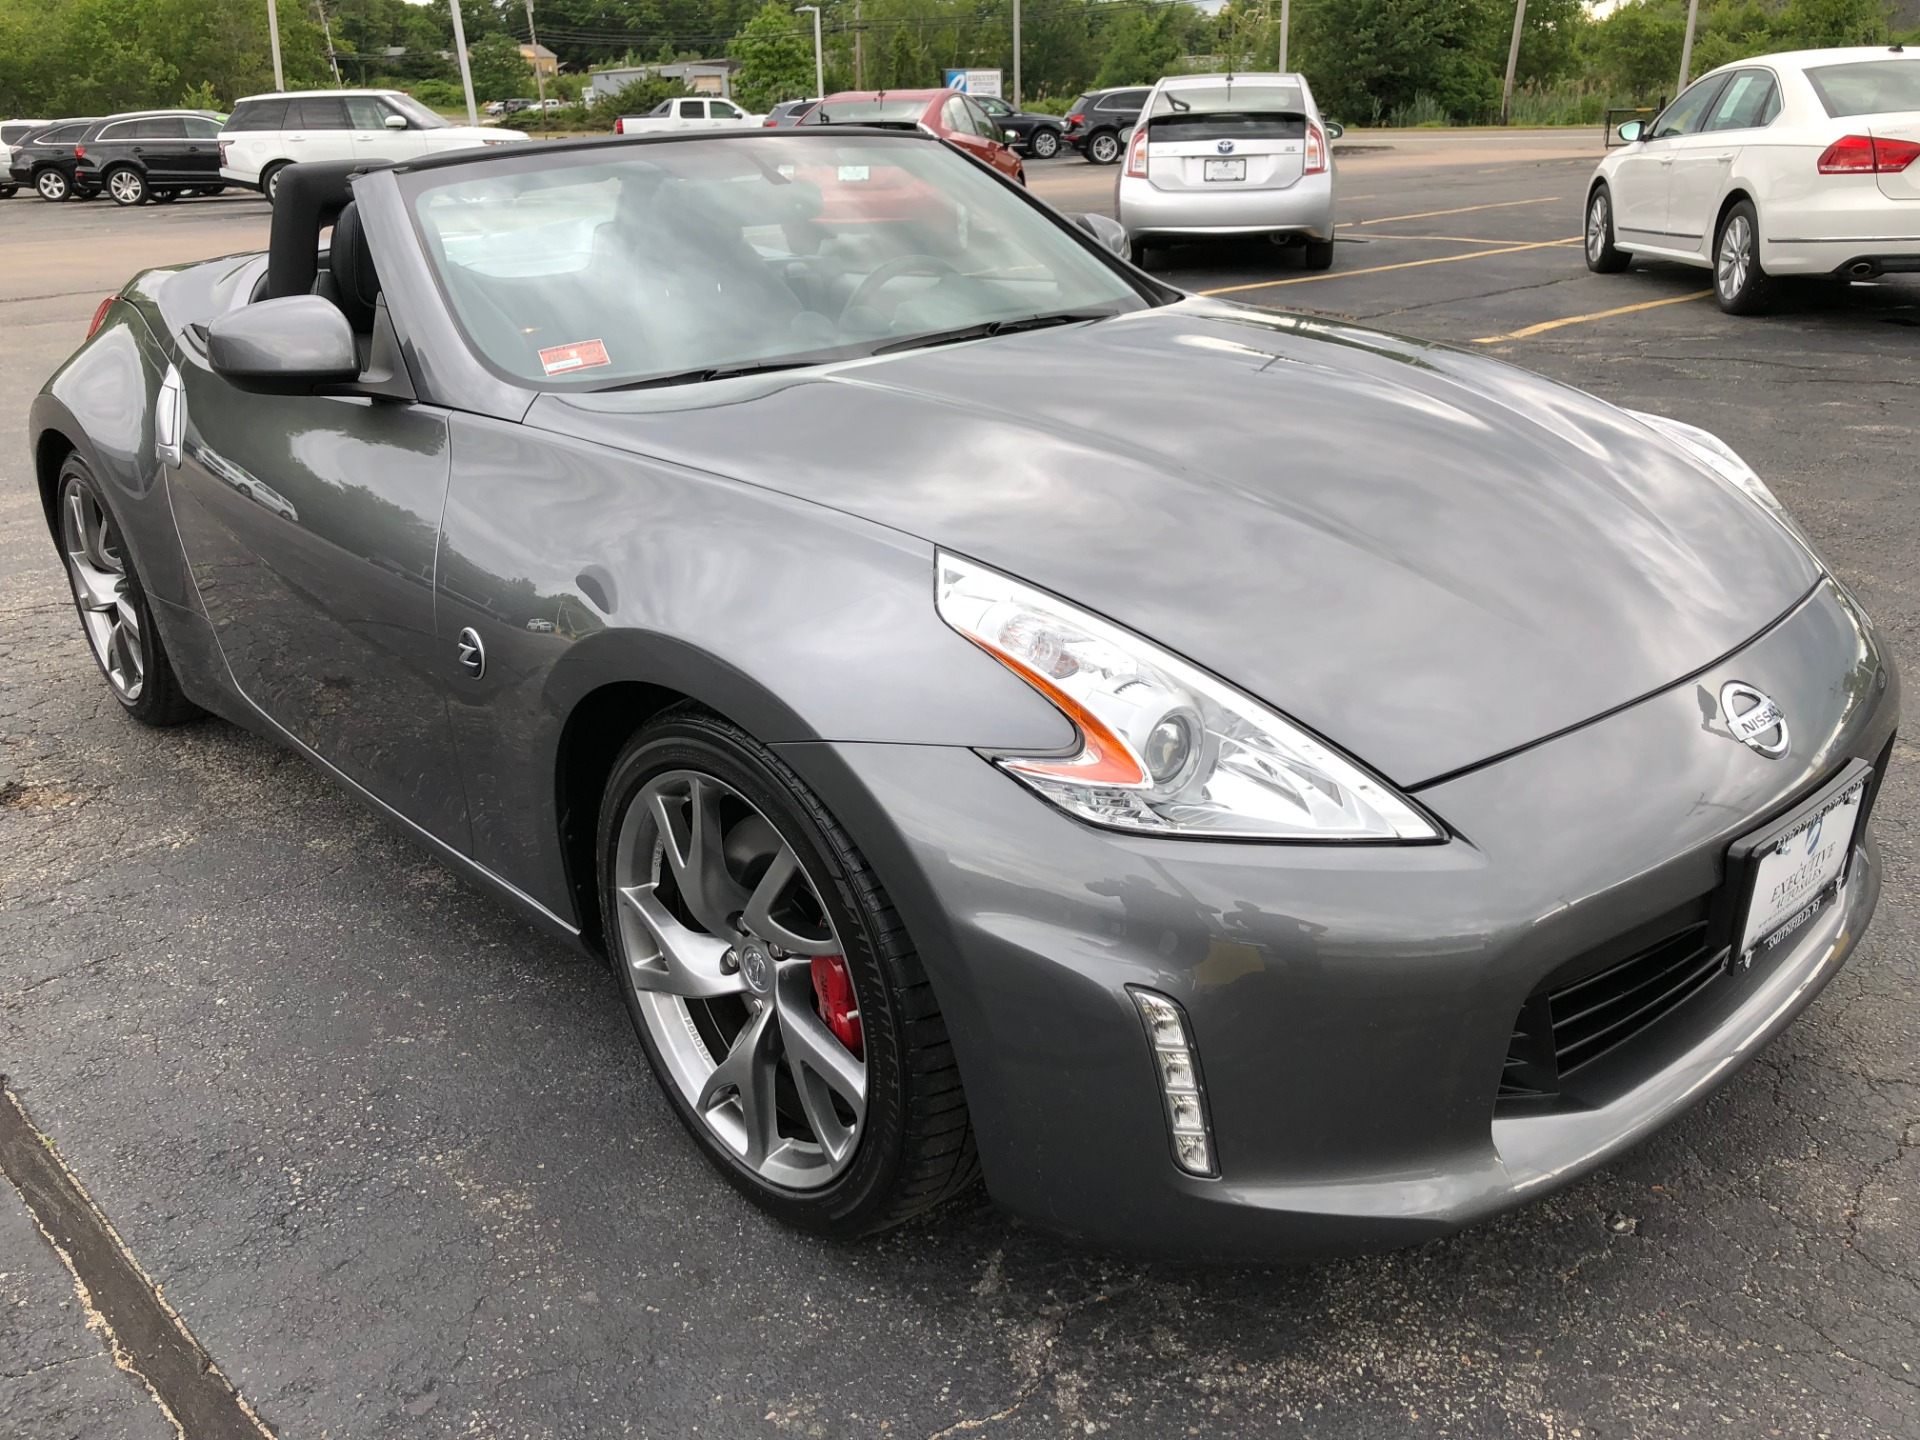 2014 Nissan 370z Touring Sp Sport Stock 1687 For Sale Near Wiring Harness Used